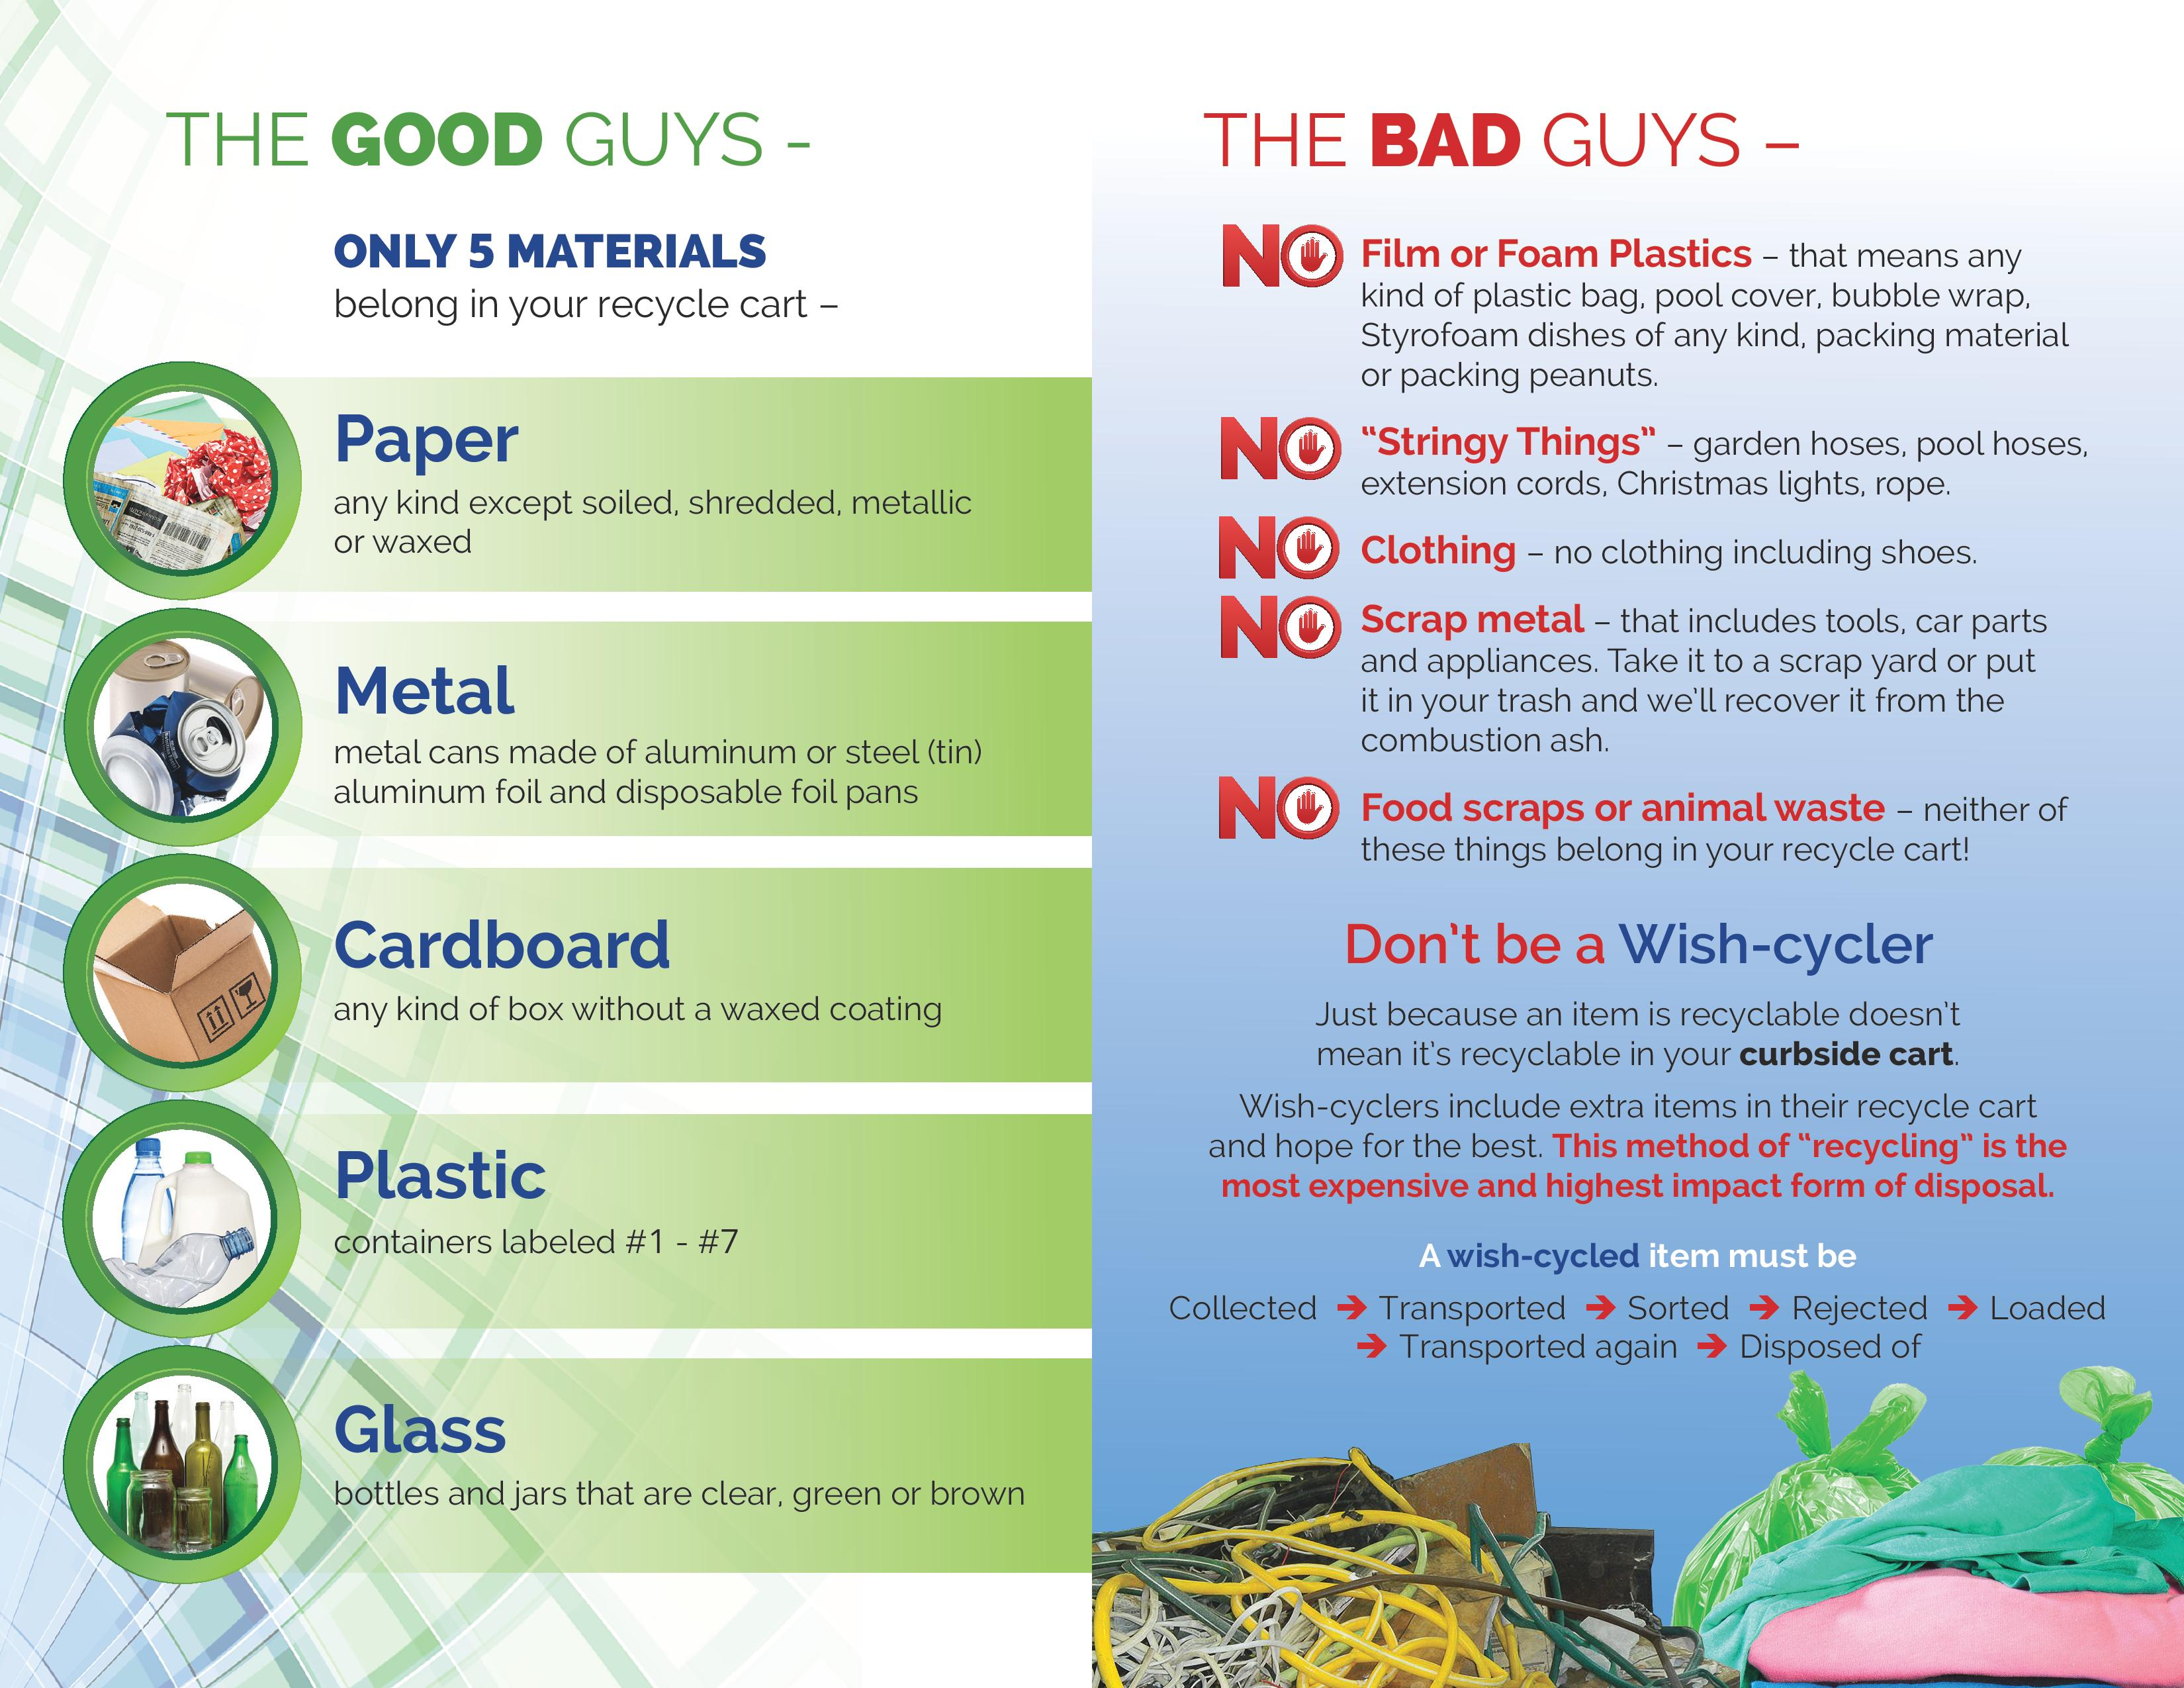 Charlotte County Leads The Way In Florida With Recycling